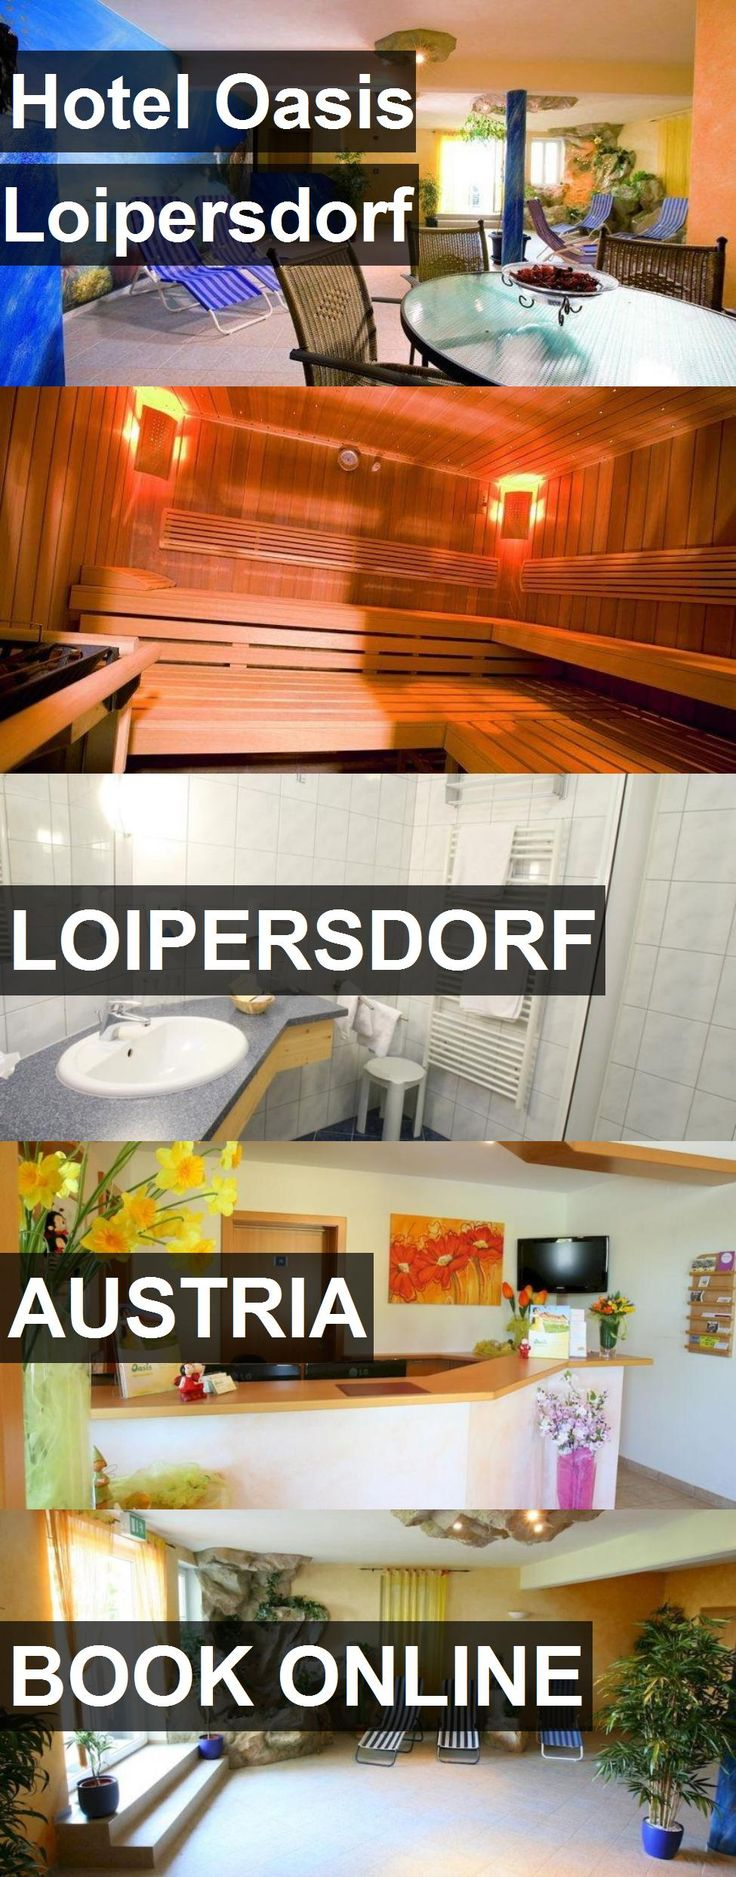 Hotel Hotel Oasis Loipersdorf in Loipersdorf, Austria. For more information, photos, reviews and best prices please follow the link. #Austria #Loipersdorf #HotelOasisLoipersdorf #hotel #travel #vacation